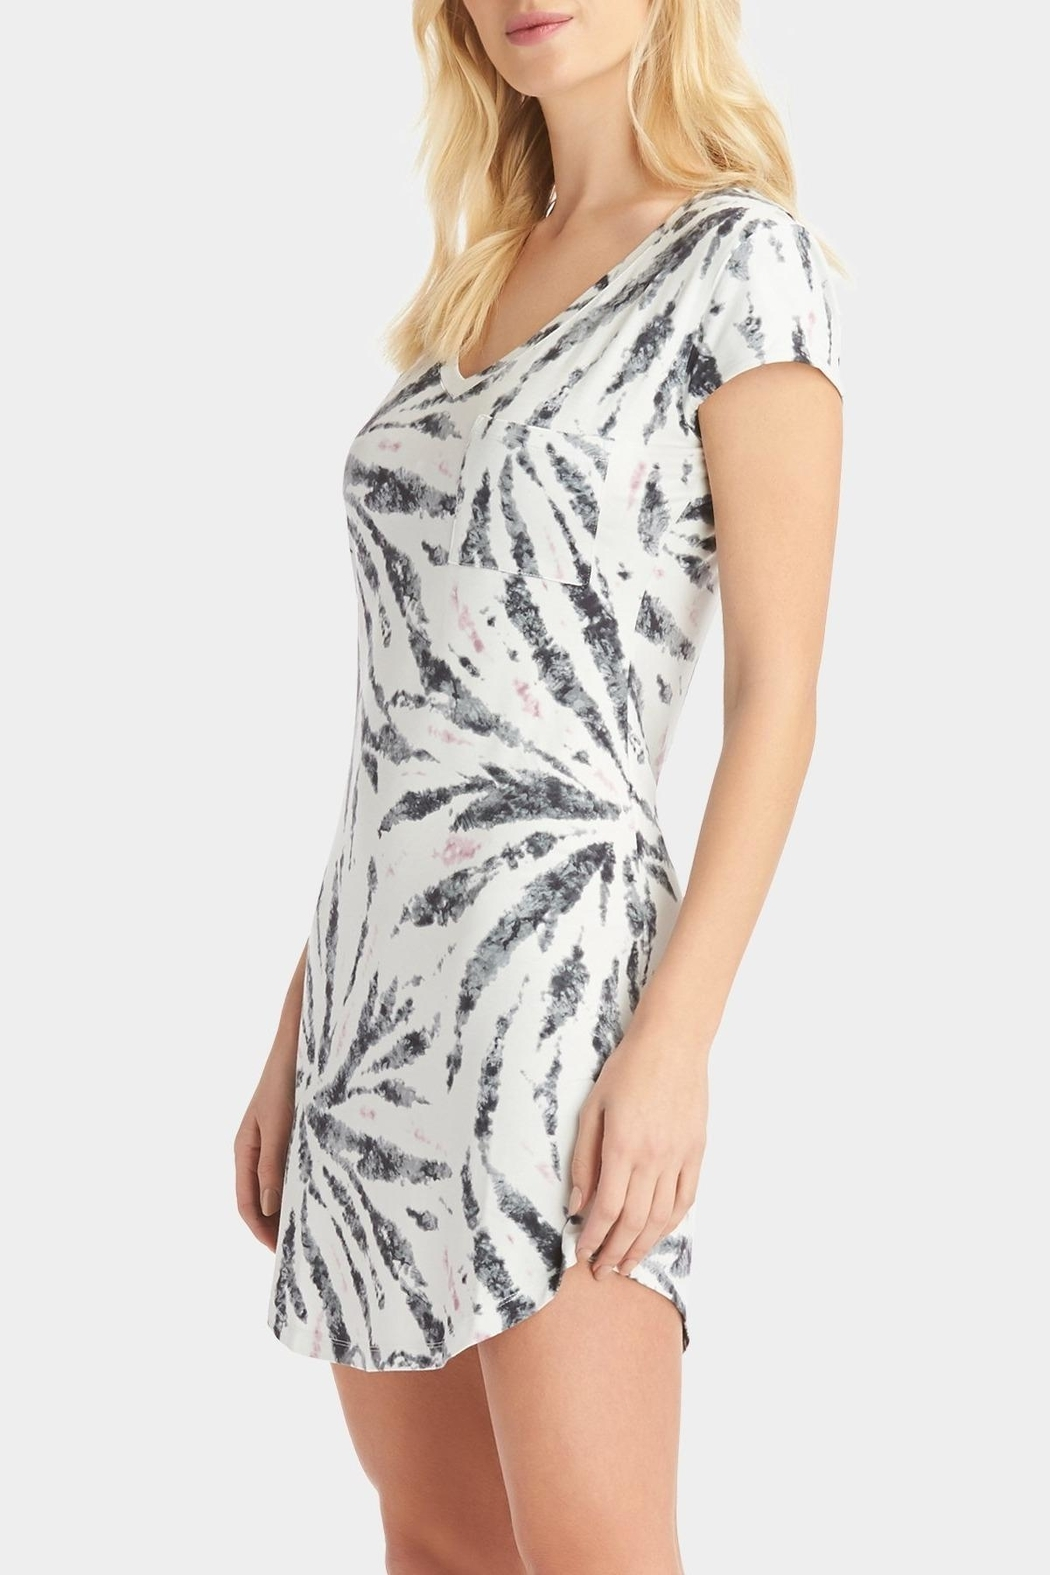 Tart Collections Tie Dye T-Shirt Dress - Front Full Image